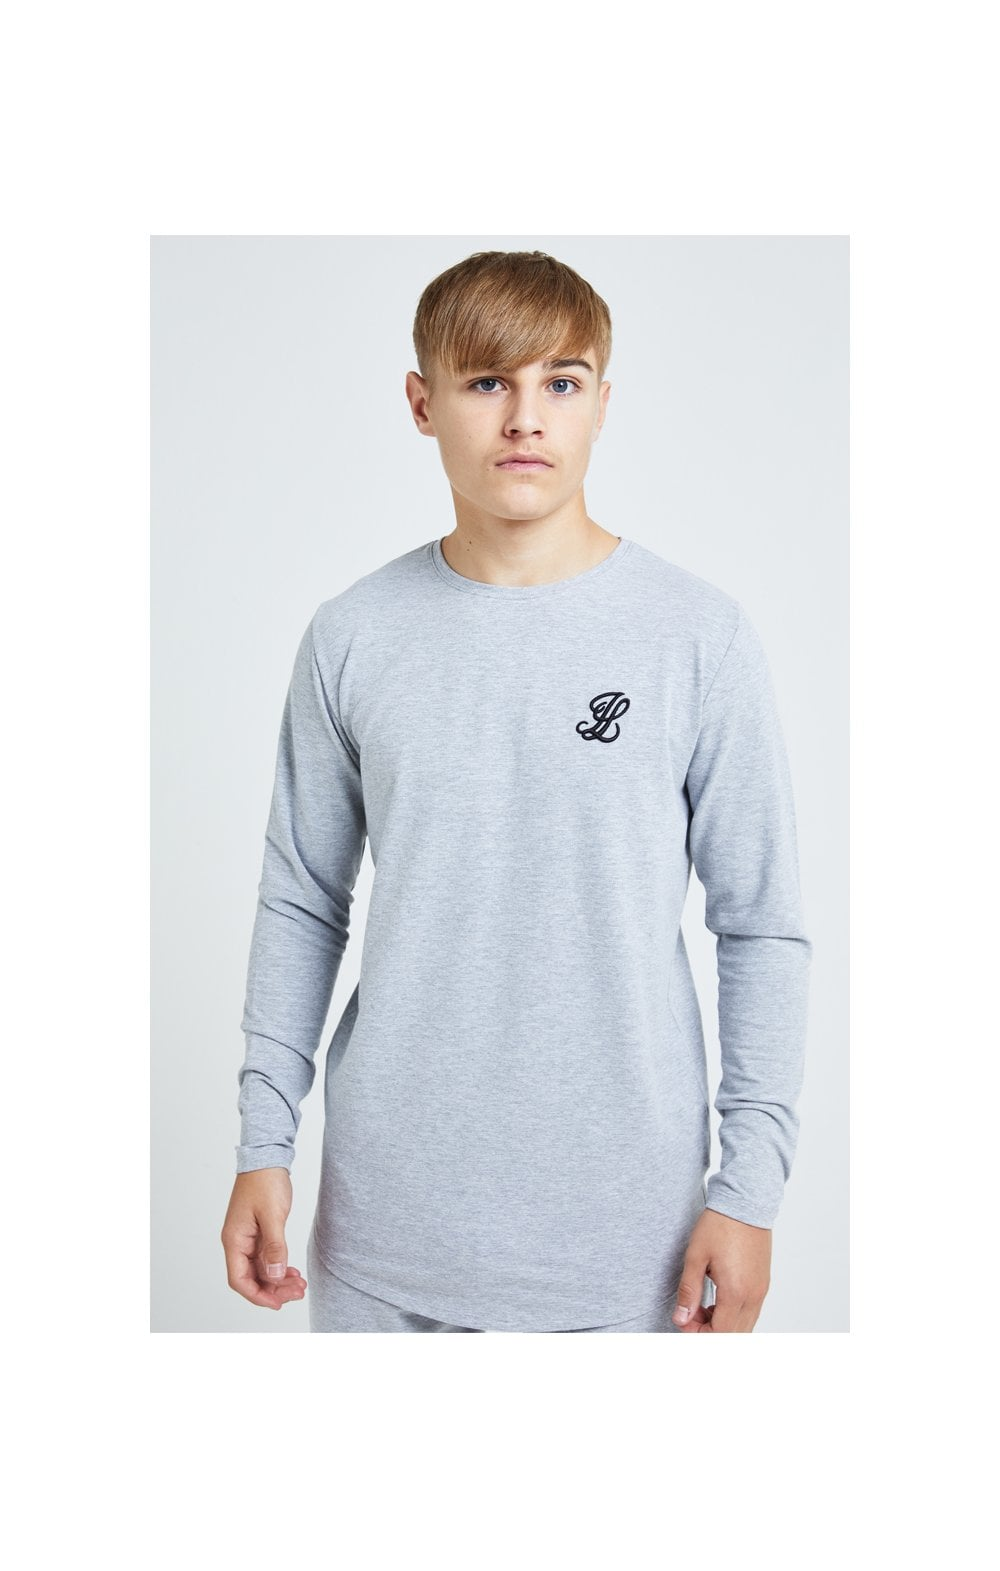 Illusive London L/S Core Tee - Grey Marl